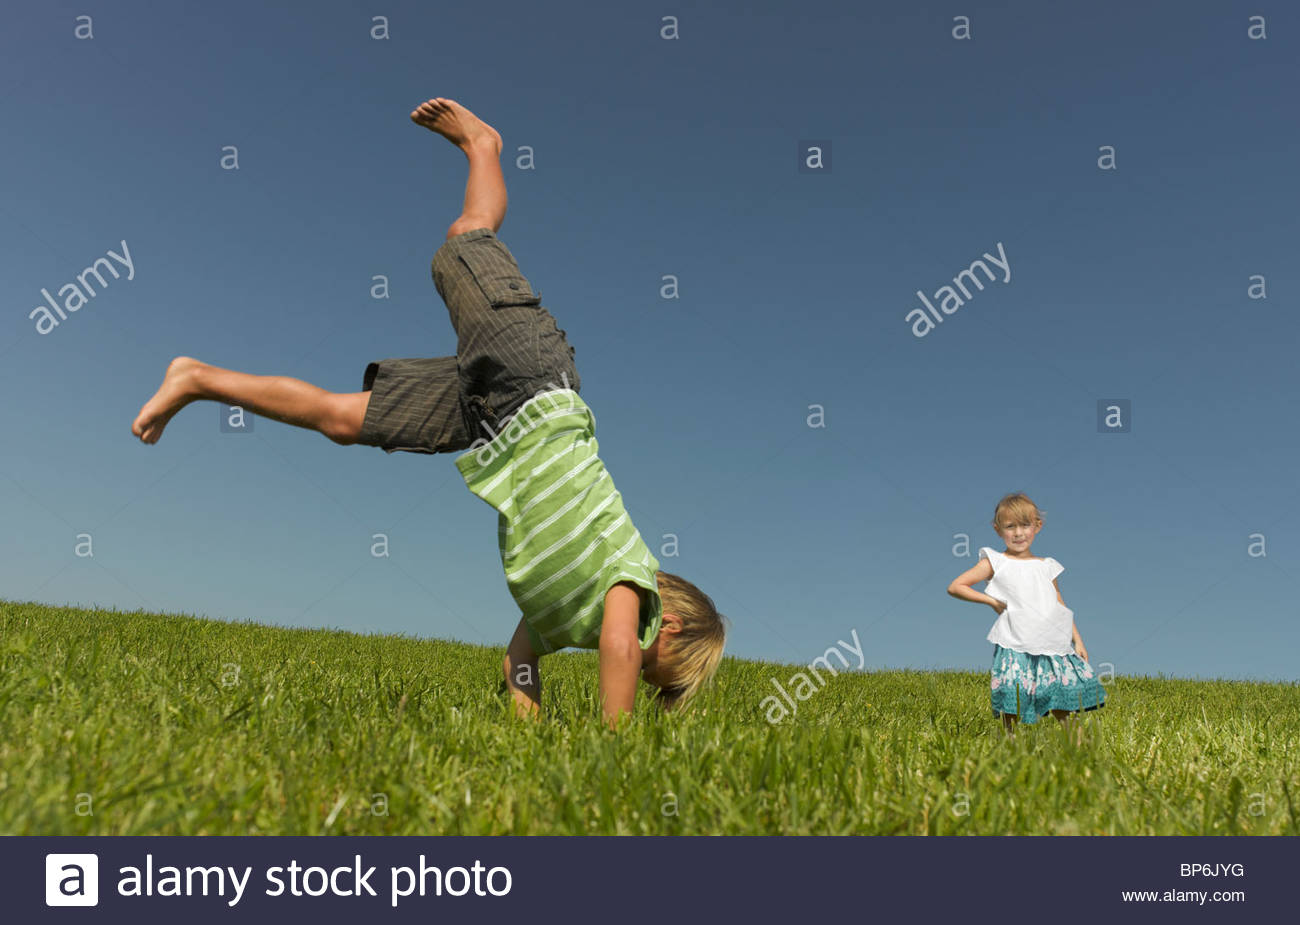 A young boy doing a handstand whilst his sister watches - Stock Image